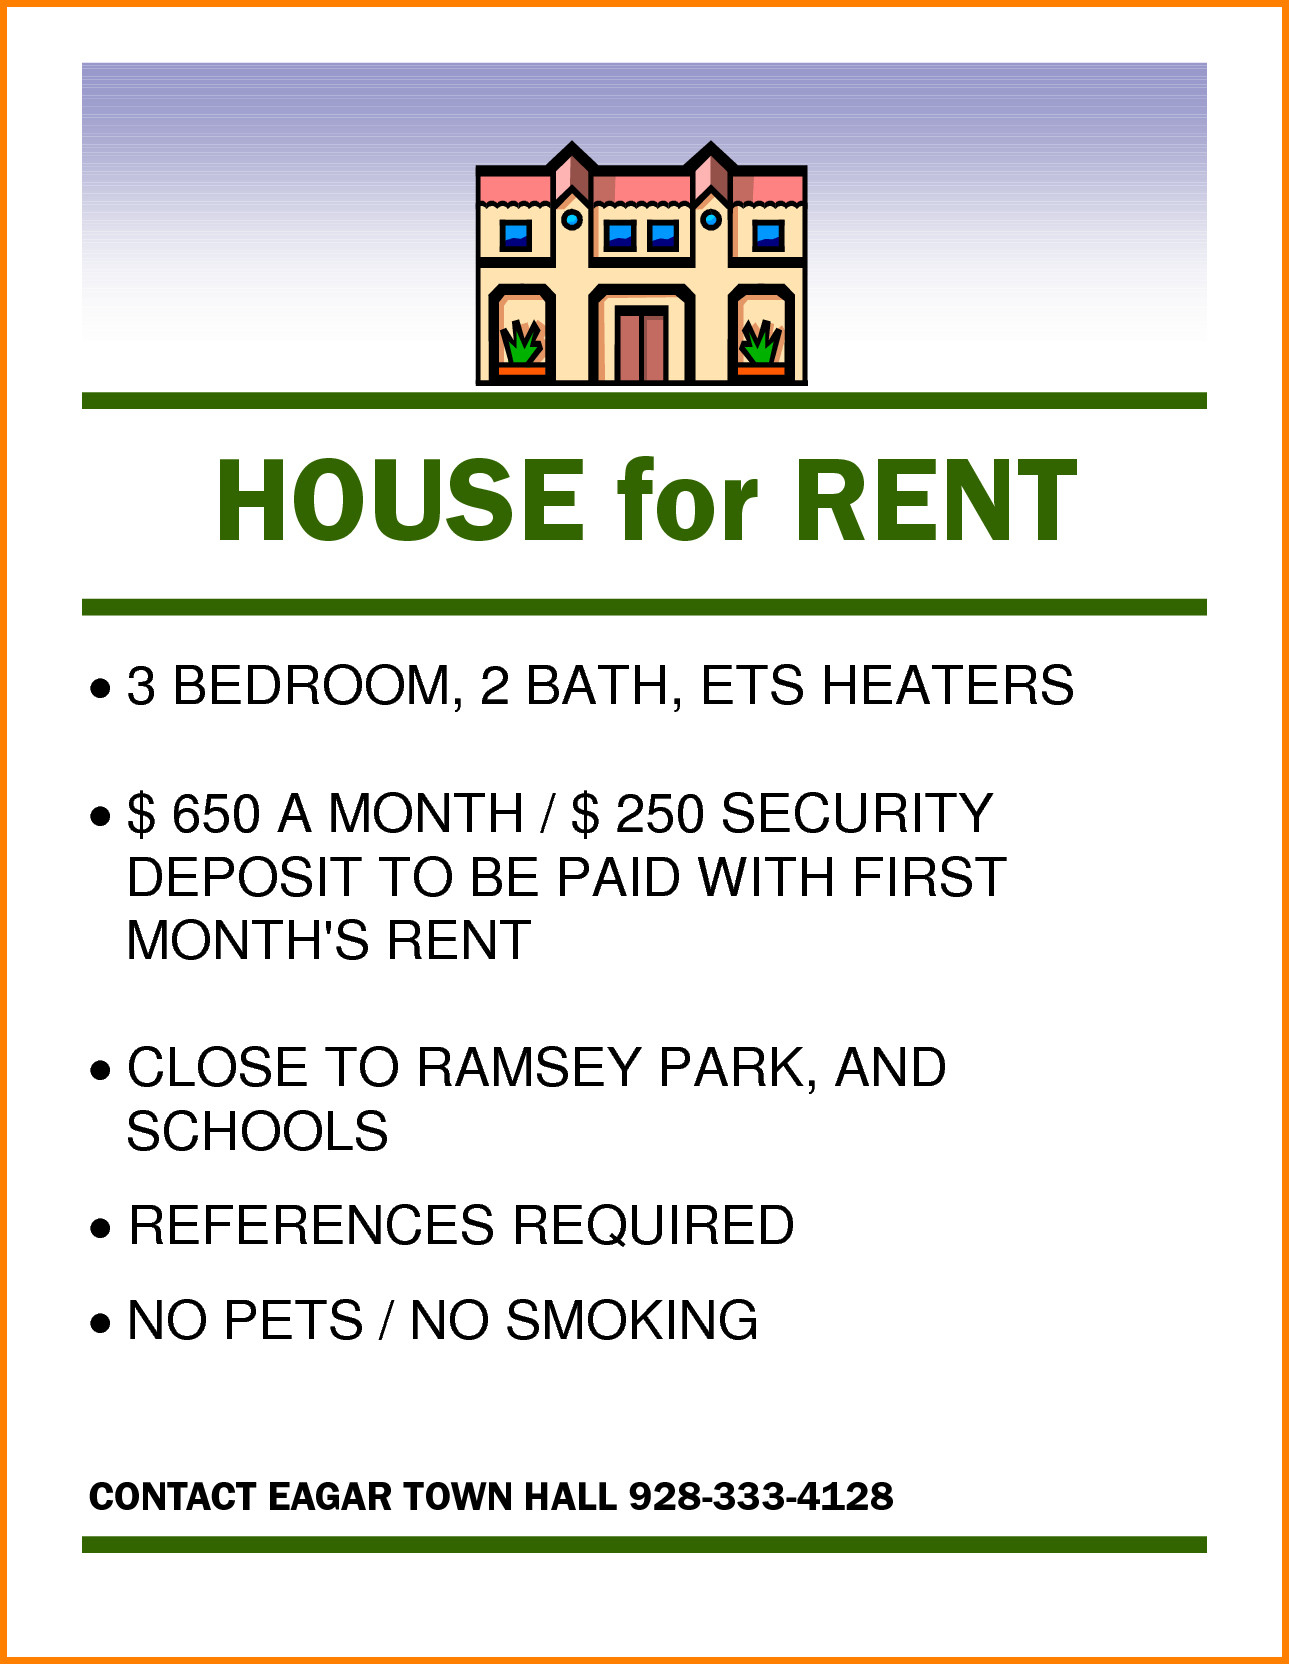 For Rent Flyer Template Awesome Home Rental Flyer Red For For Rent Flyer Template Word